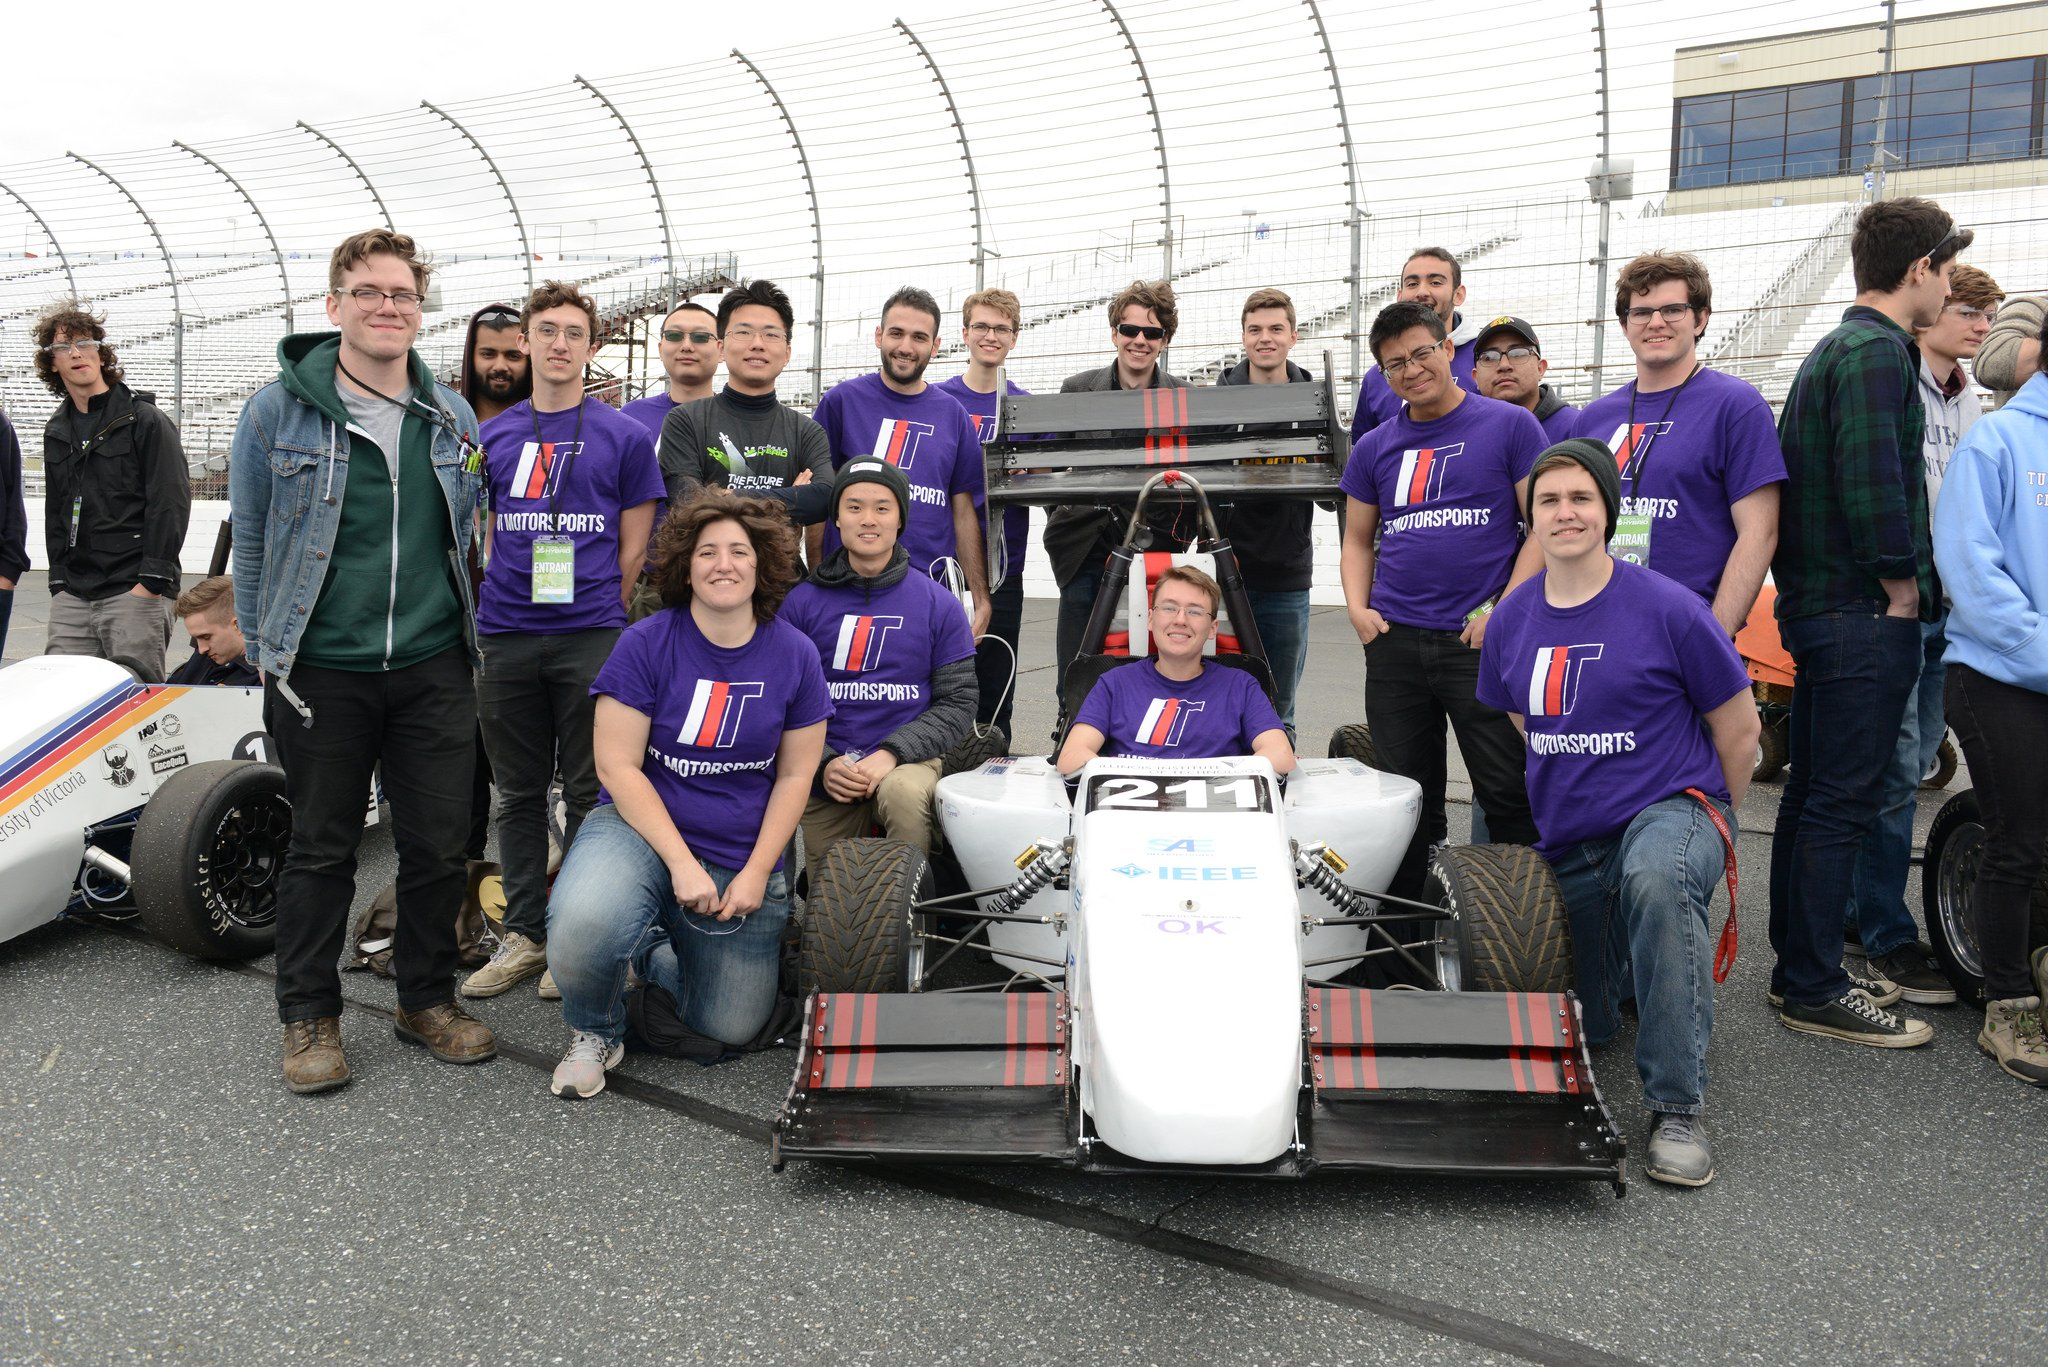 Congrats to Illinois Institute of Technology @IITEngineering @illinoistech for taking 4th in electric at #FormulaHybrid17! https://t.co/3ka7bxCb0P